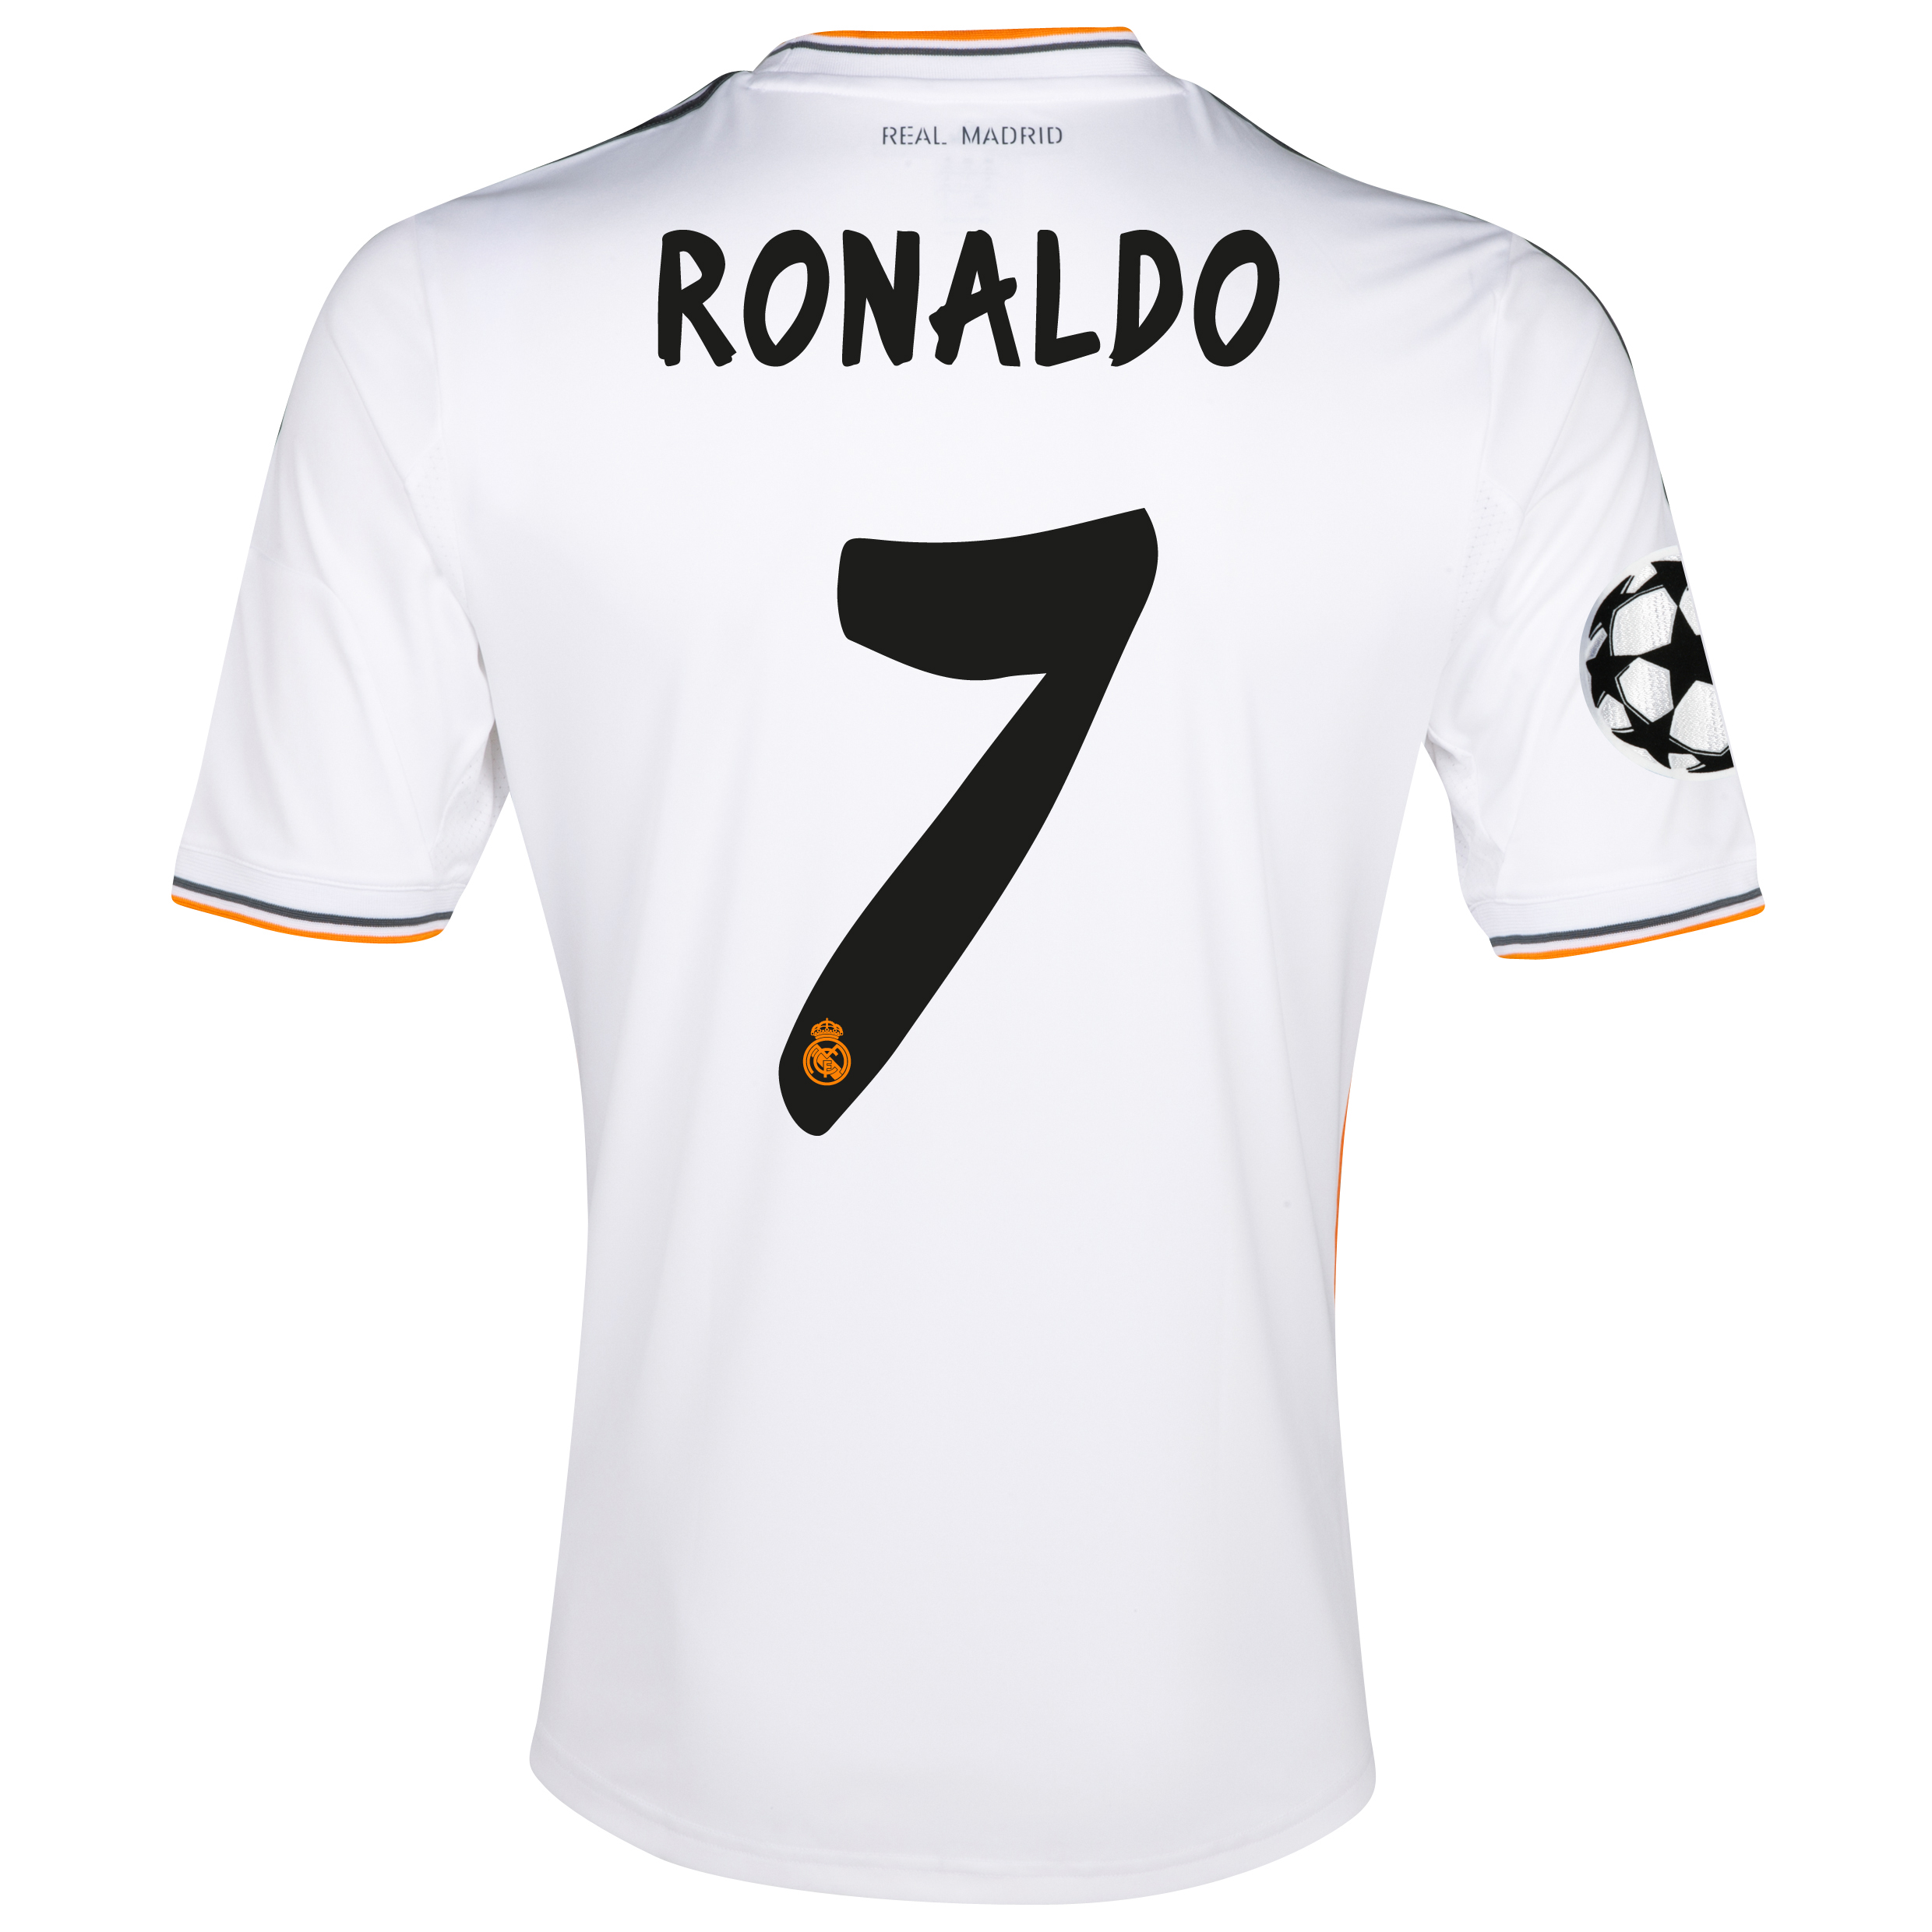 Real Madrid UEFA Champions League Home Shirt 2013/14 - kids with Ronaldo 7 printing